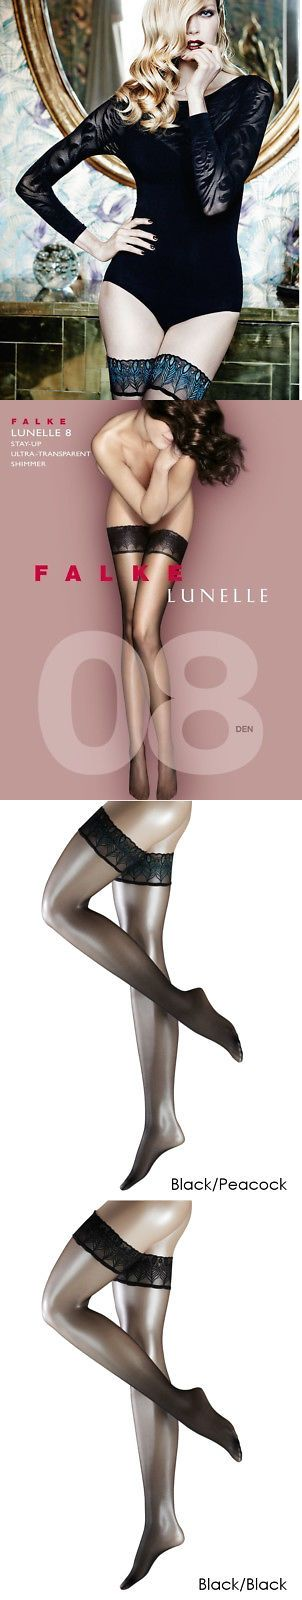 Stockings and Thigh-Highs 11527: Falke Lunelle 8 Denier Sheer Hold Ups, Stay Ups, Thigh Highs -> BUY IT NOW ONLY: $30.95 on eBay!